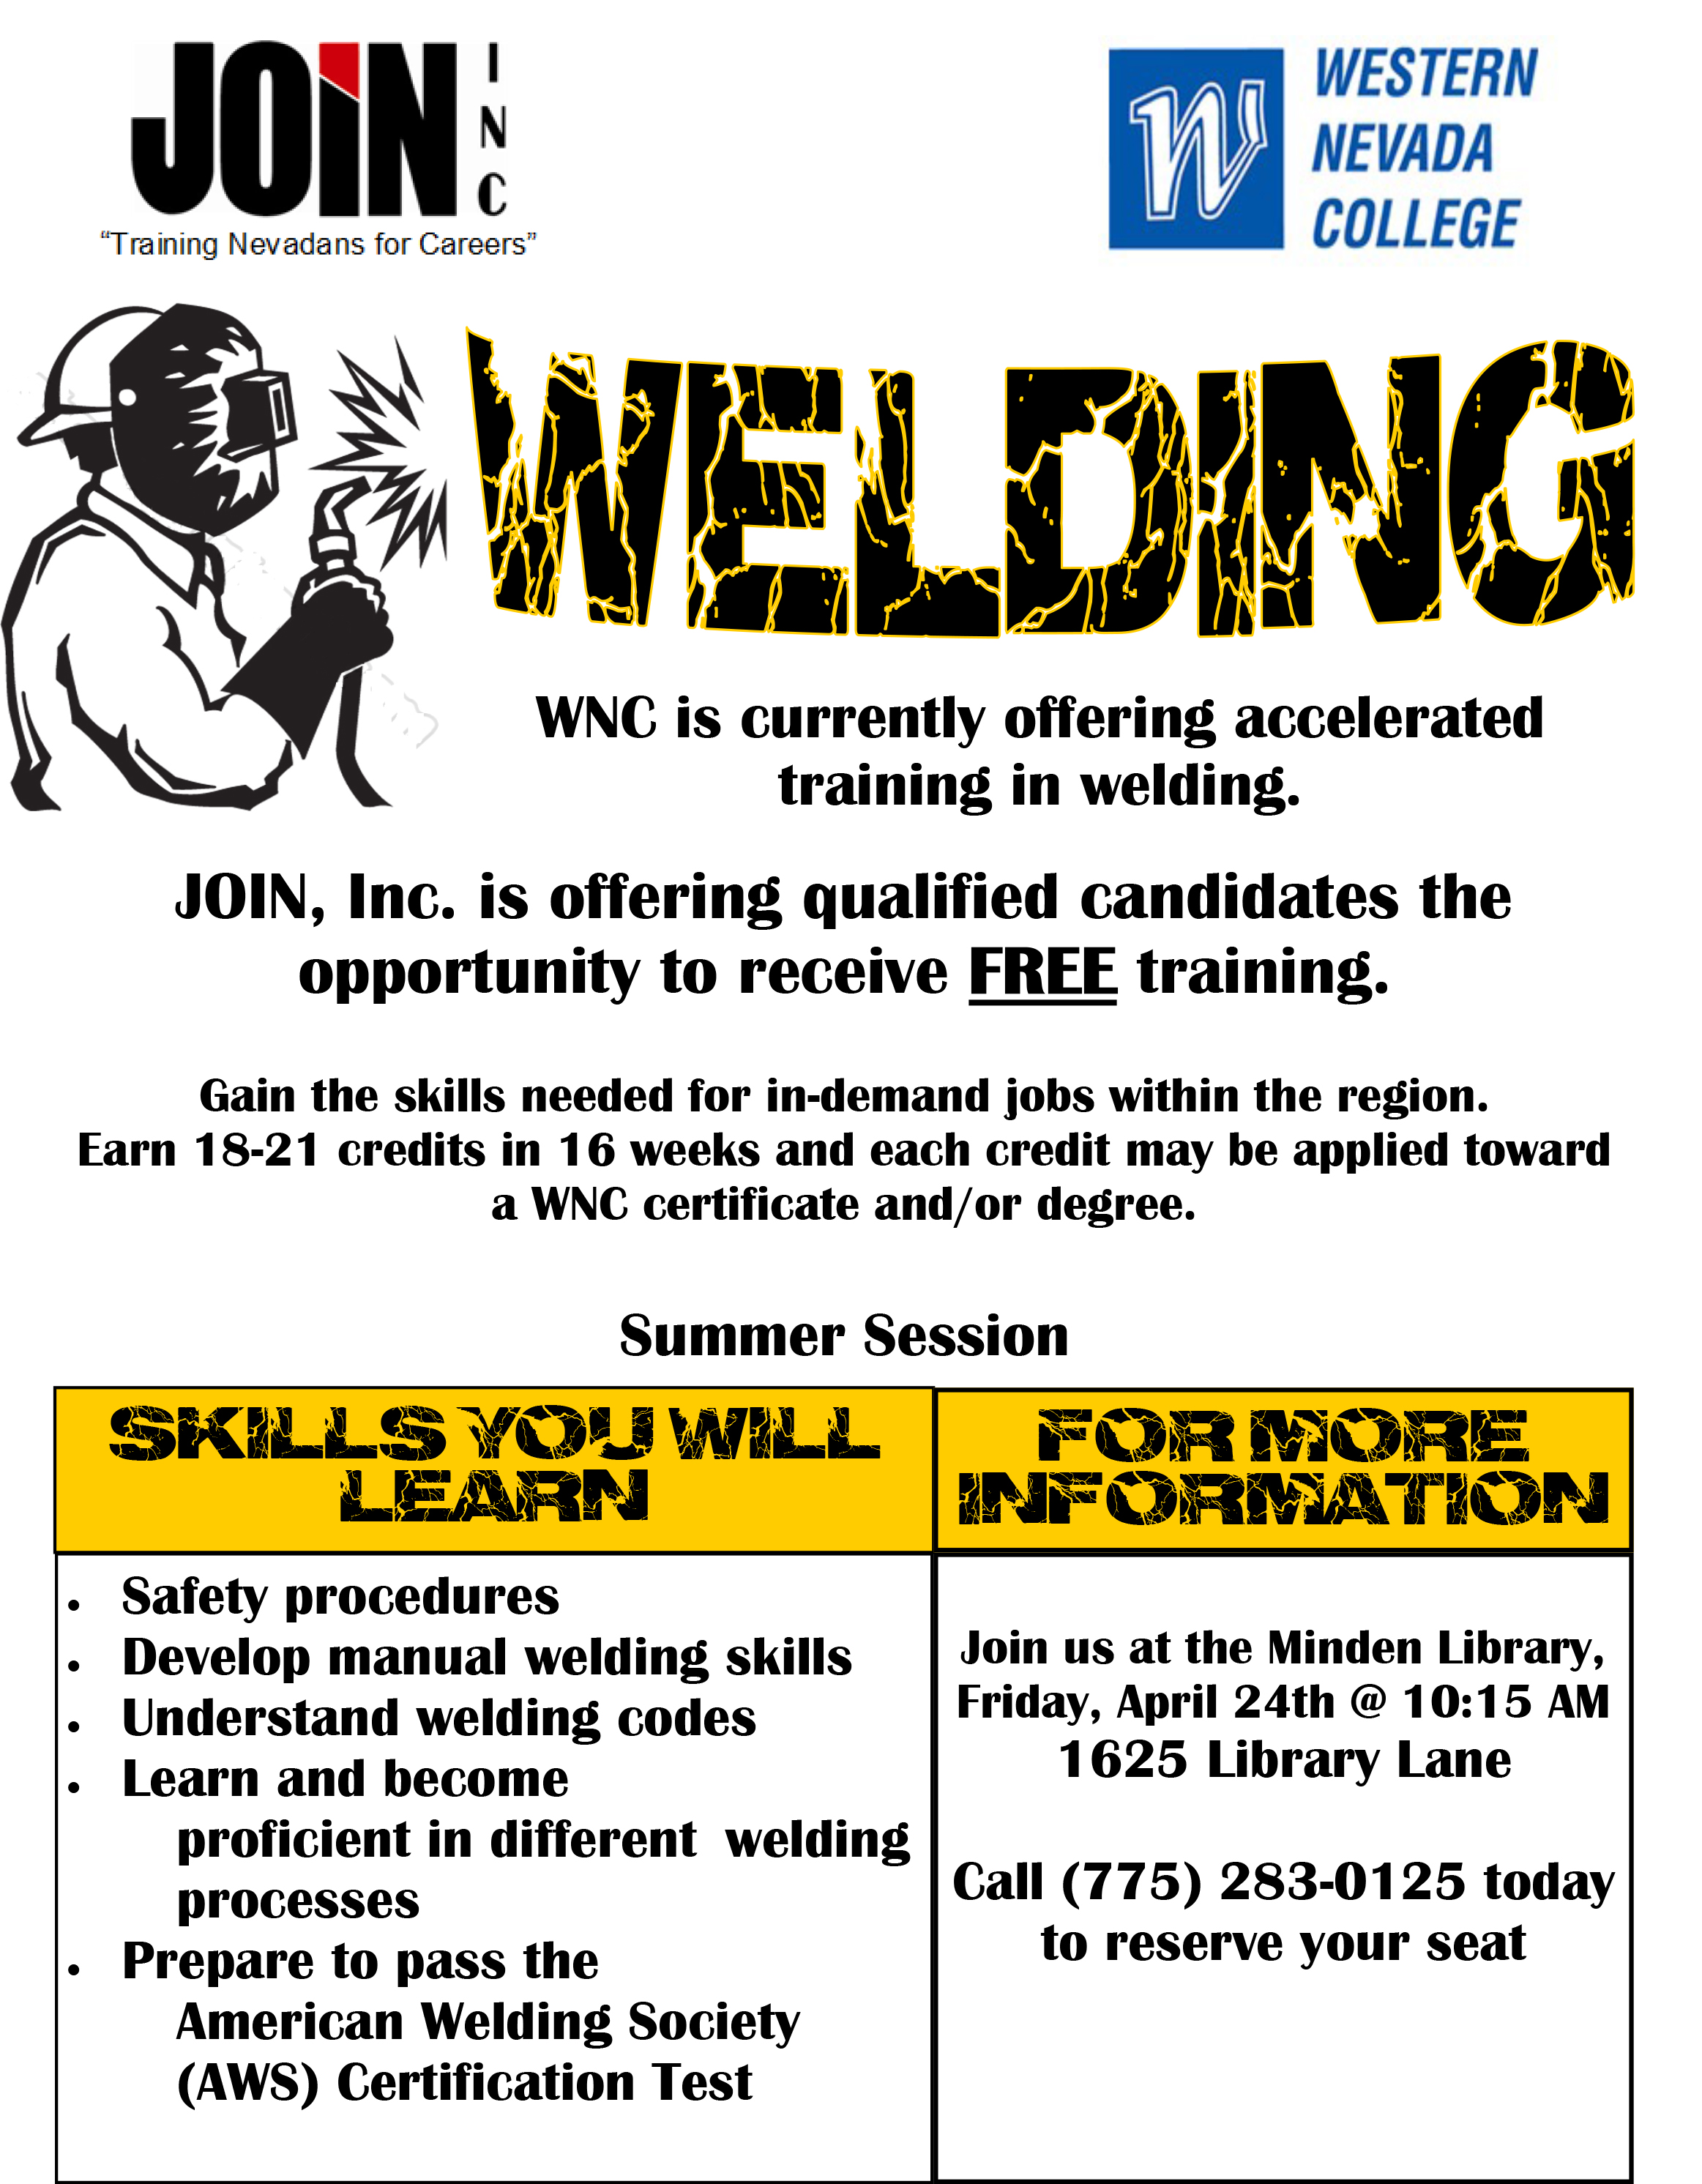 Accelerated Welding Training Offered Through Western Nevada College